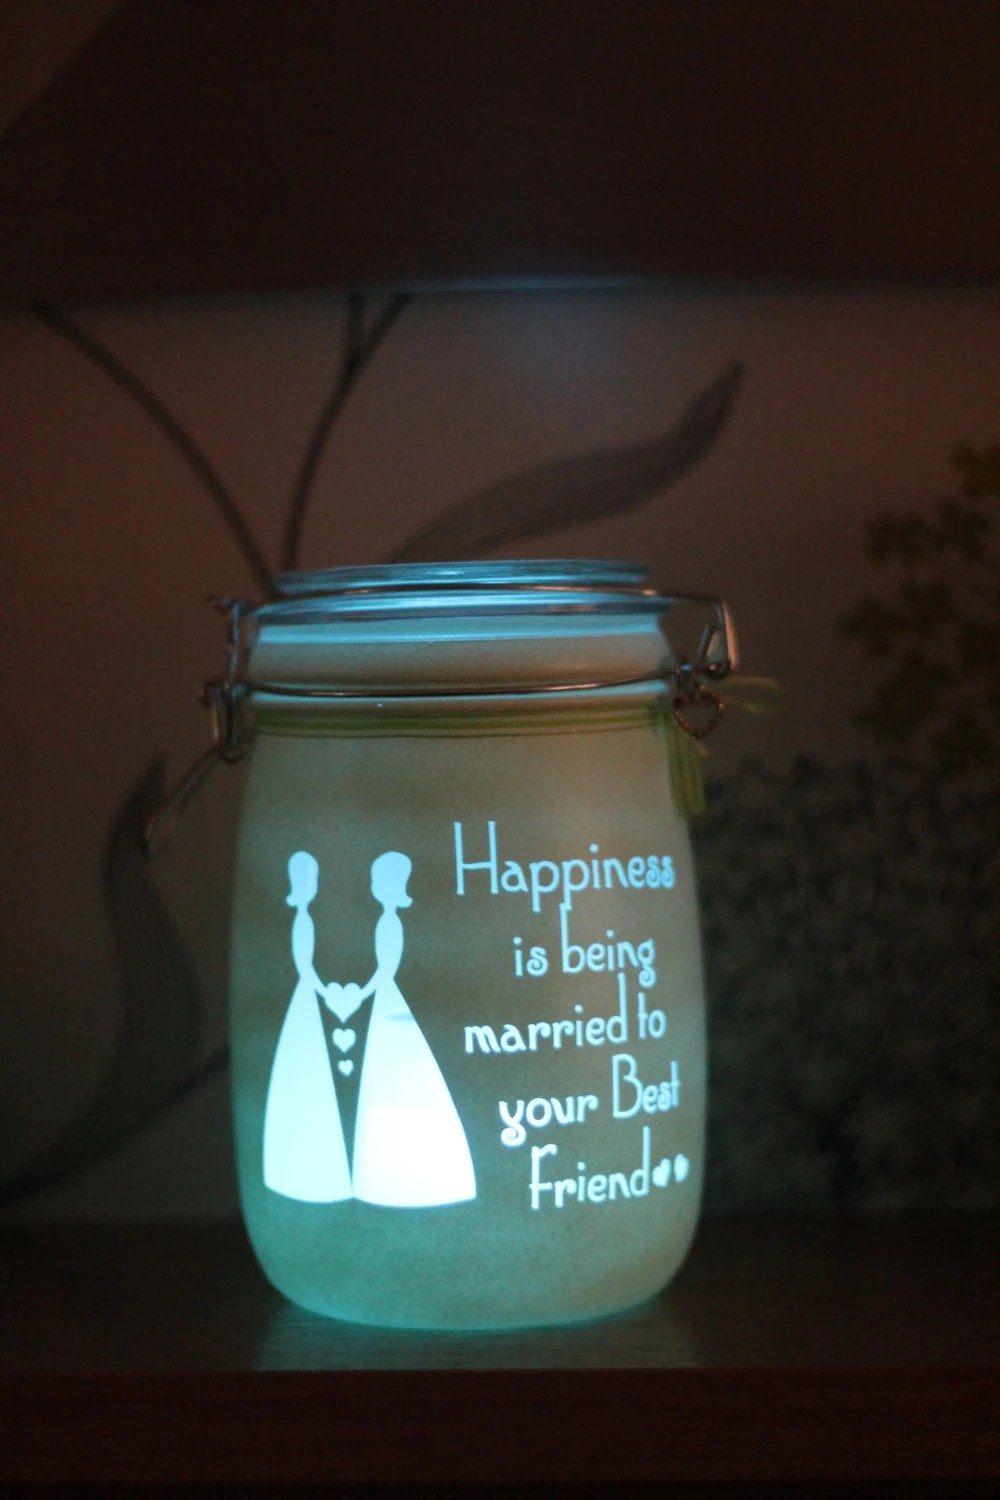 lesbian wedding lesbian wedding ideas Lesbian wedding gift Civil Partners Personalised Memory Jar Happiness is Being Married to your Best friend Wedding Gift jar of hearts